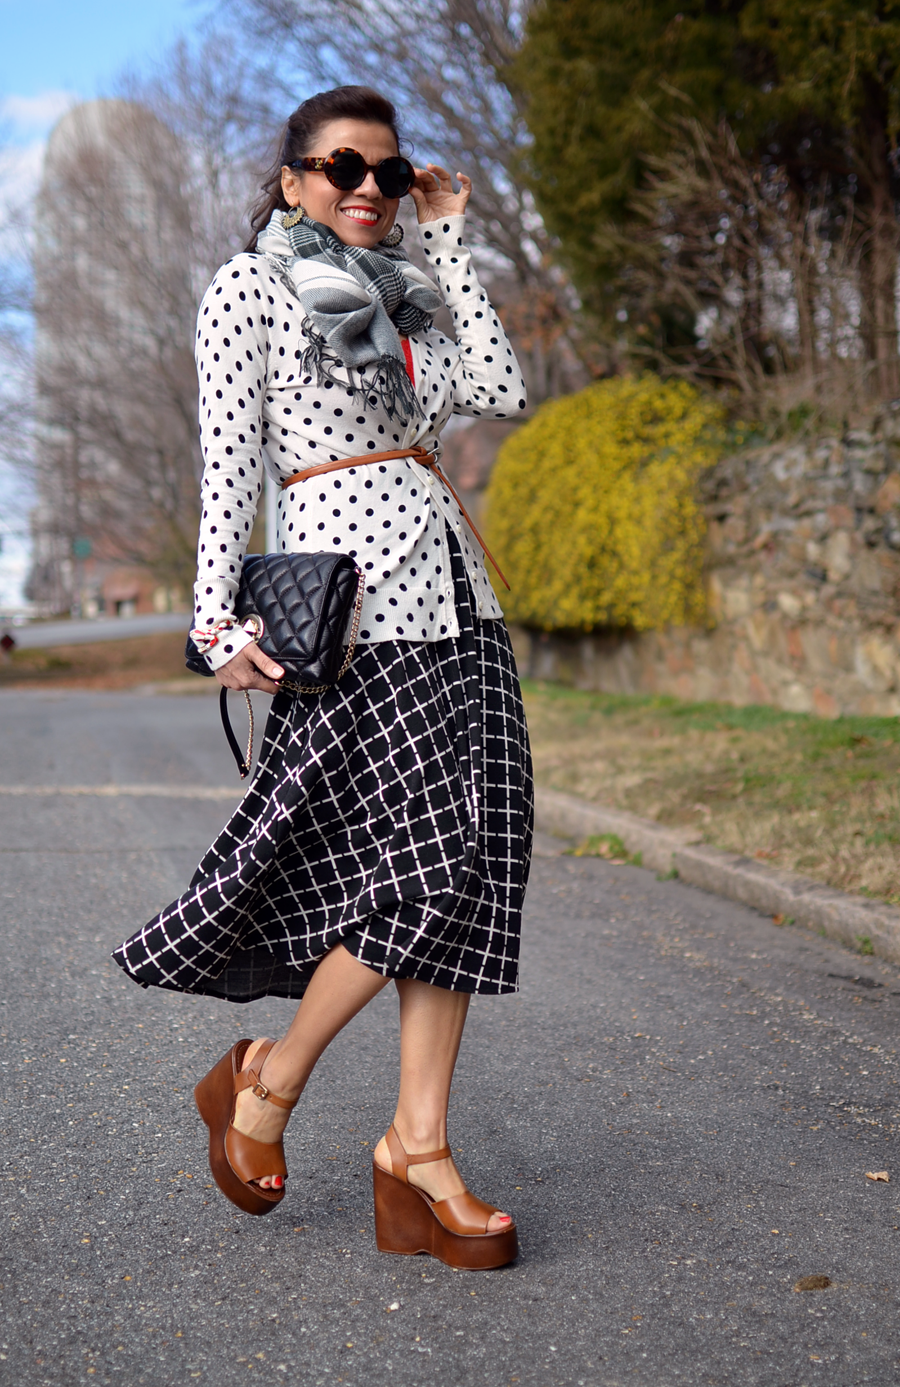 Outfit with polka dots and plaid